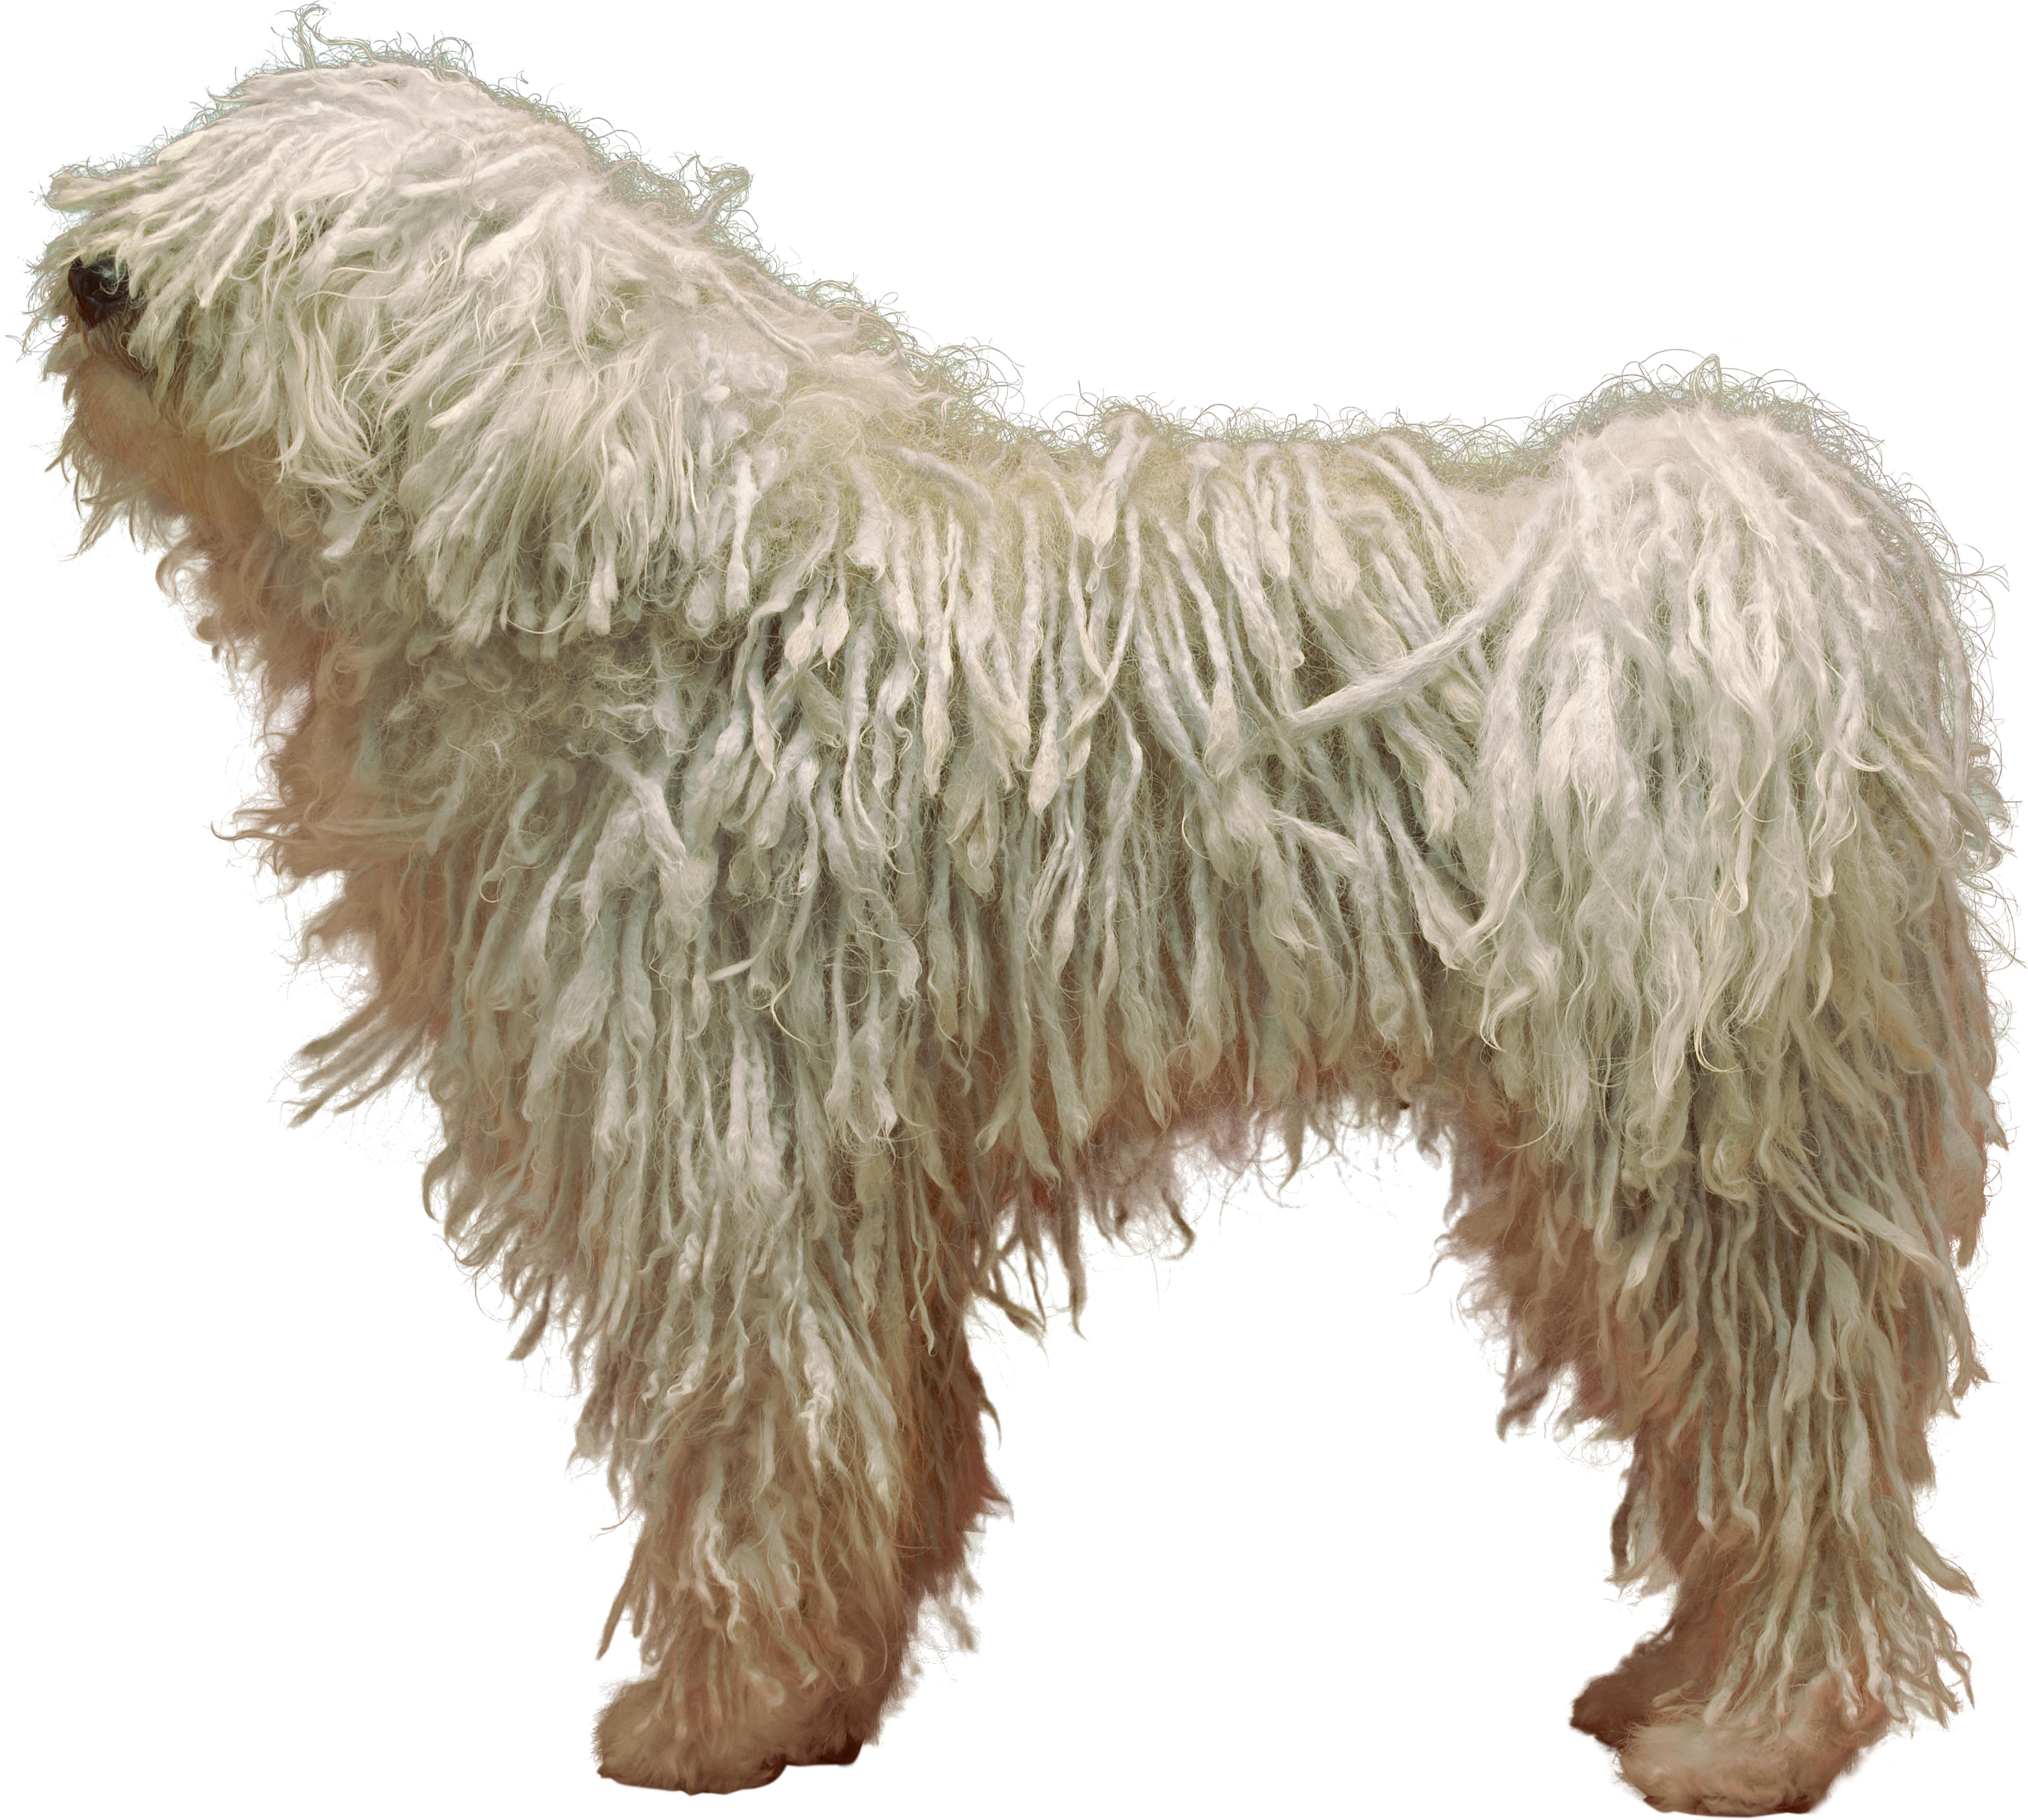 Profile of a Komondor dog standing in front of a white background